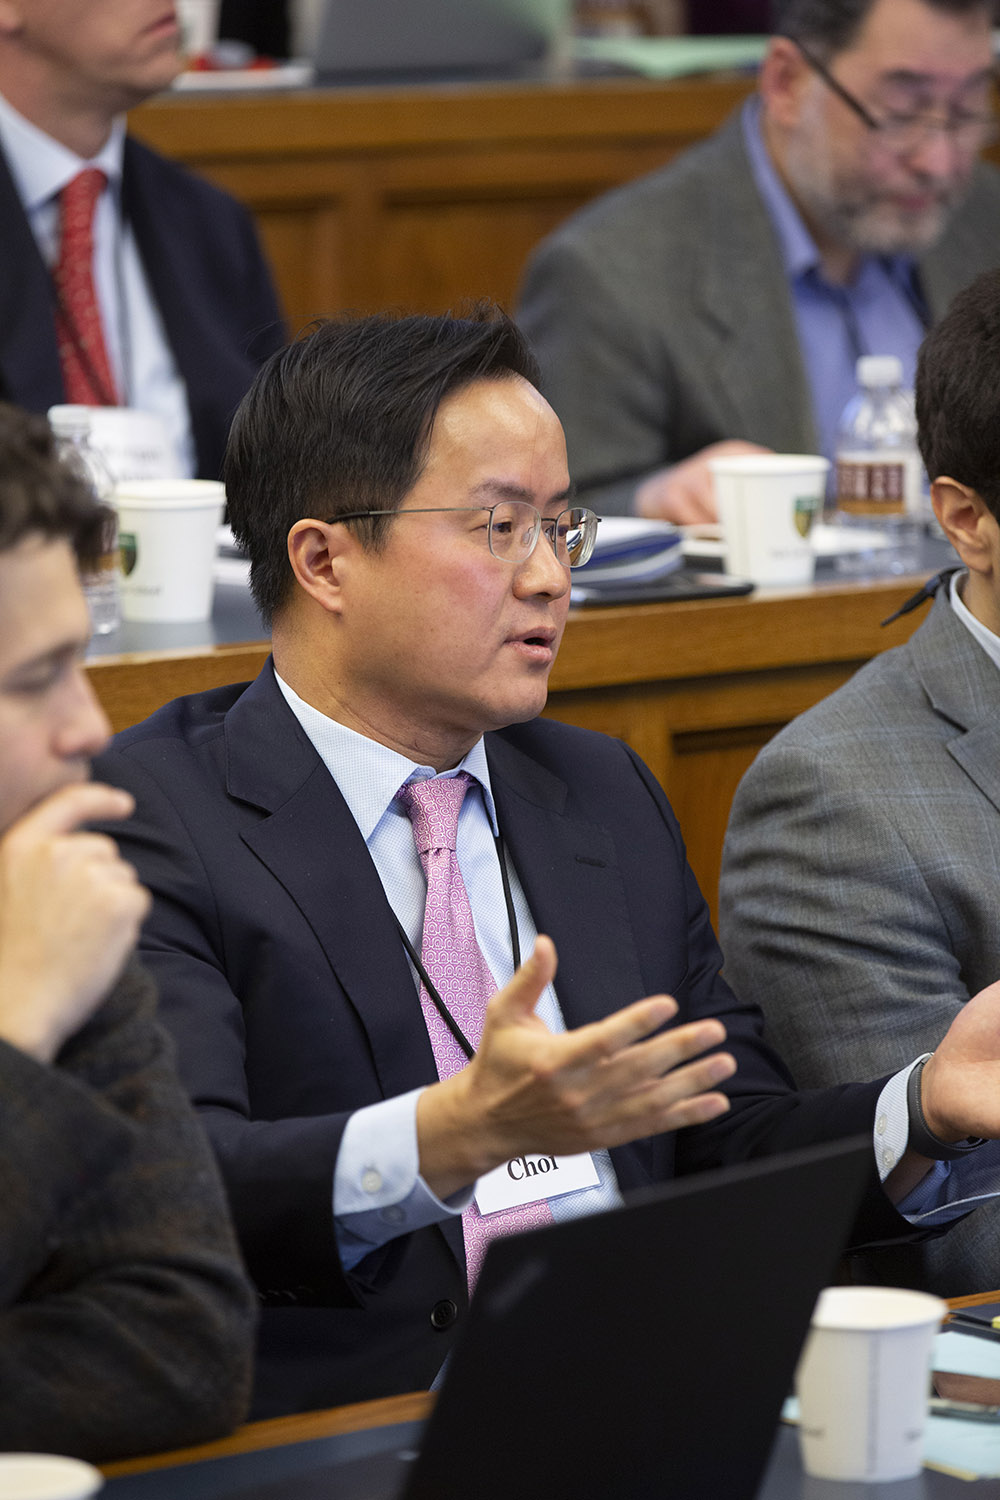 UVA Law Prof. Albert Choi '01 asking a question